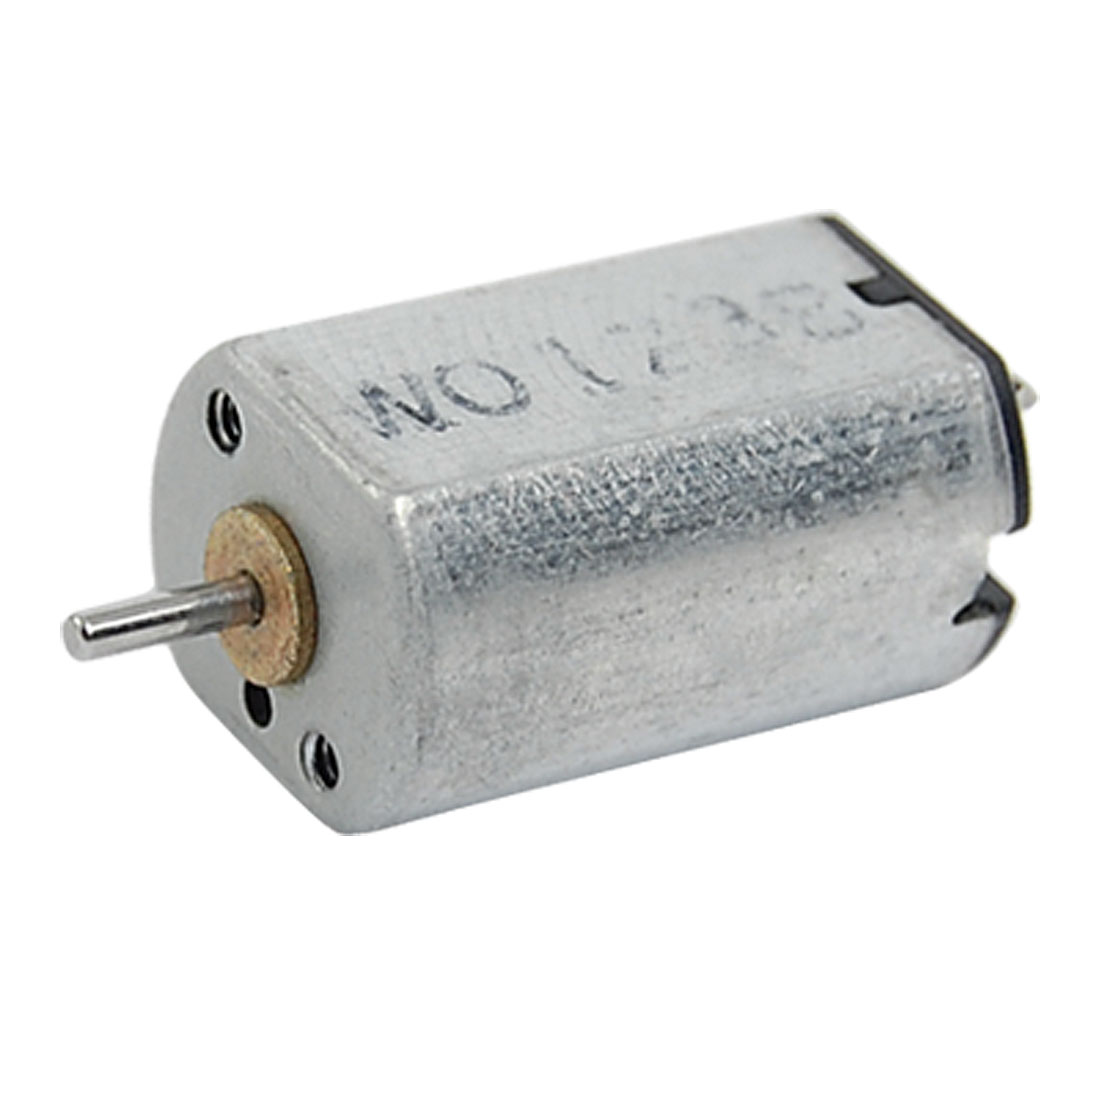 1mm-Shaft-3V-6000RPM-DC-Electric-Mini-Motor-Smart-Cars-DIY-Toys